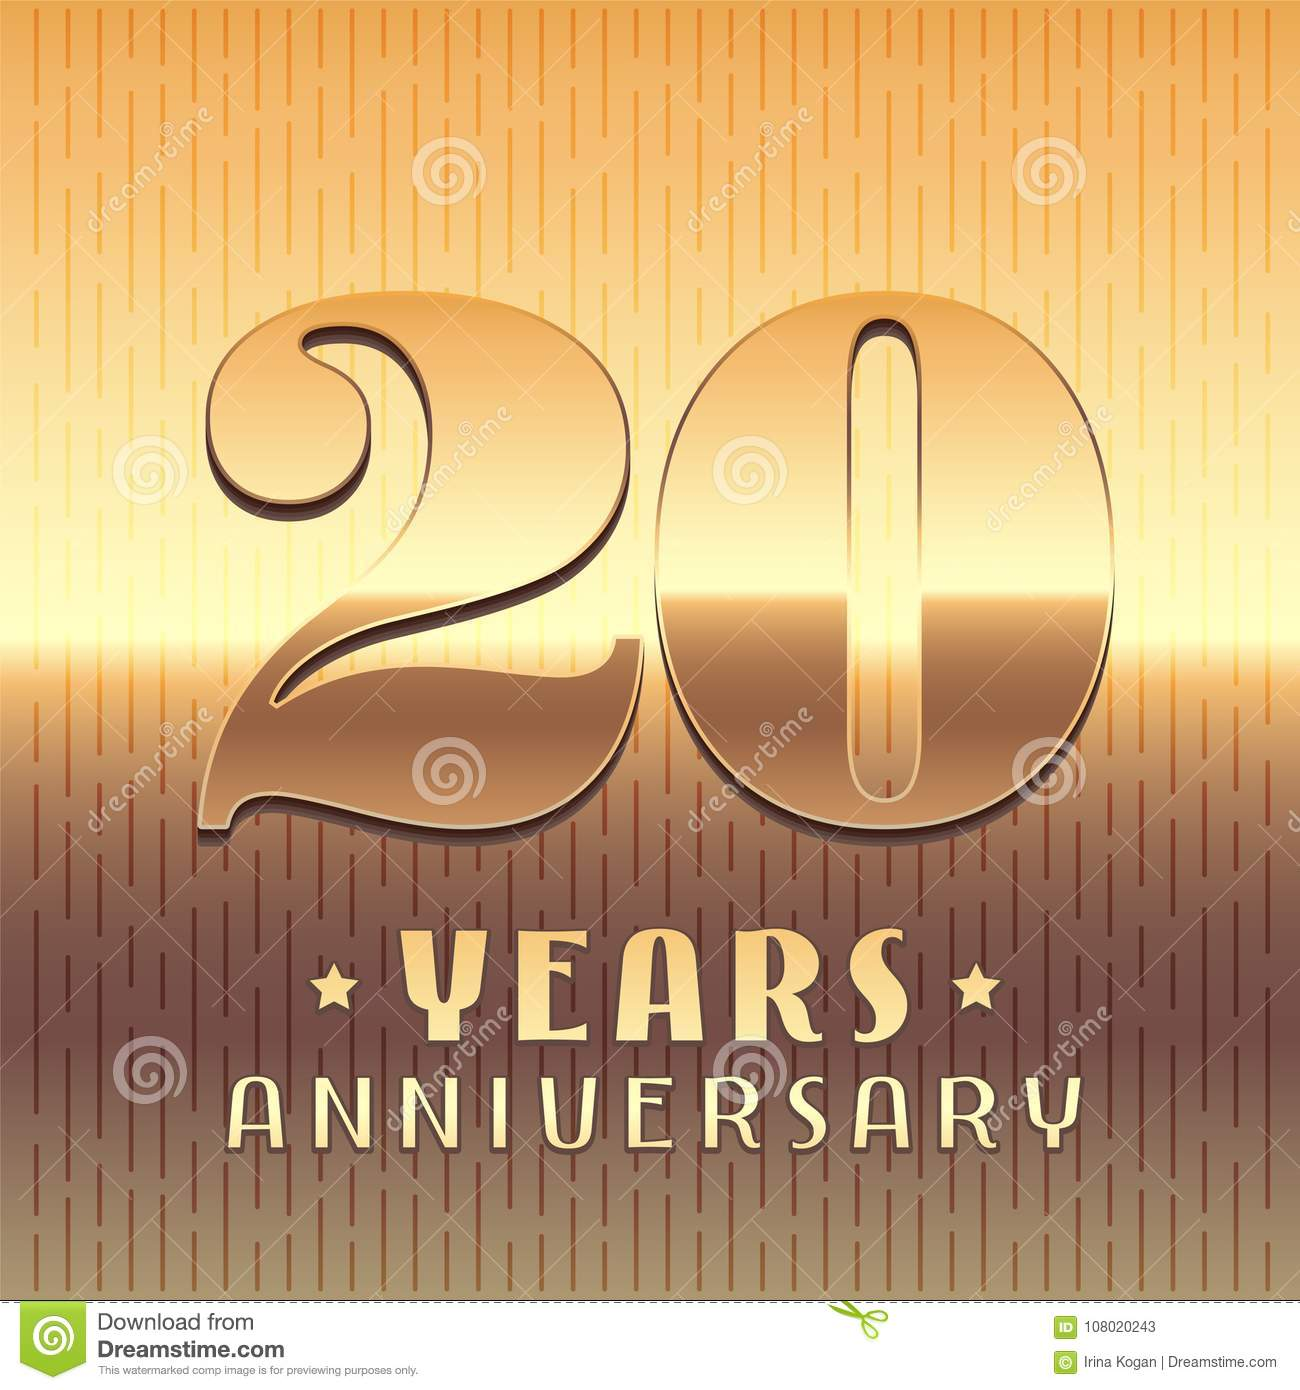 20 Years Anniversary Vector Icon Symbol Stock Vector Illustration